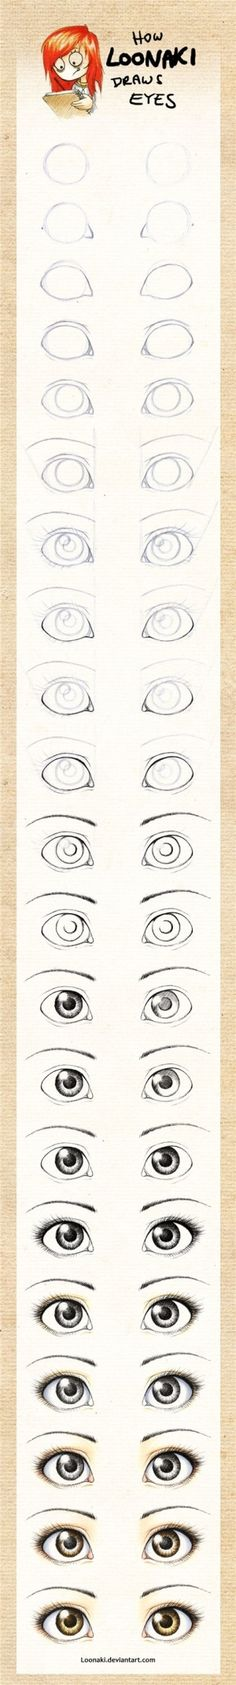 how to draw eyes by PeachPrints